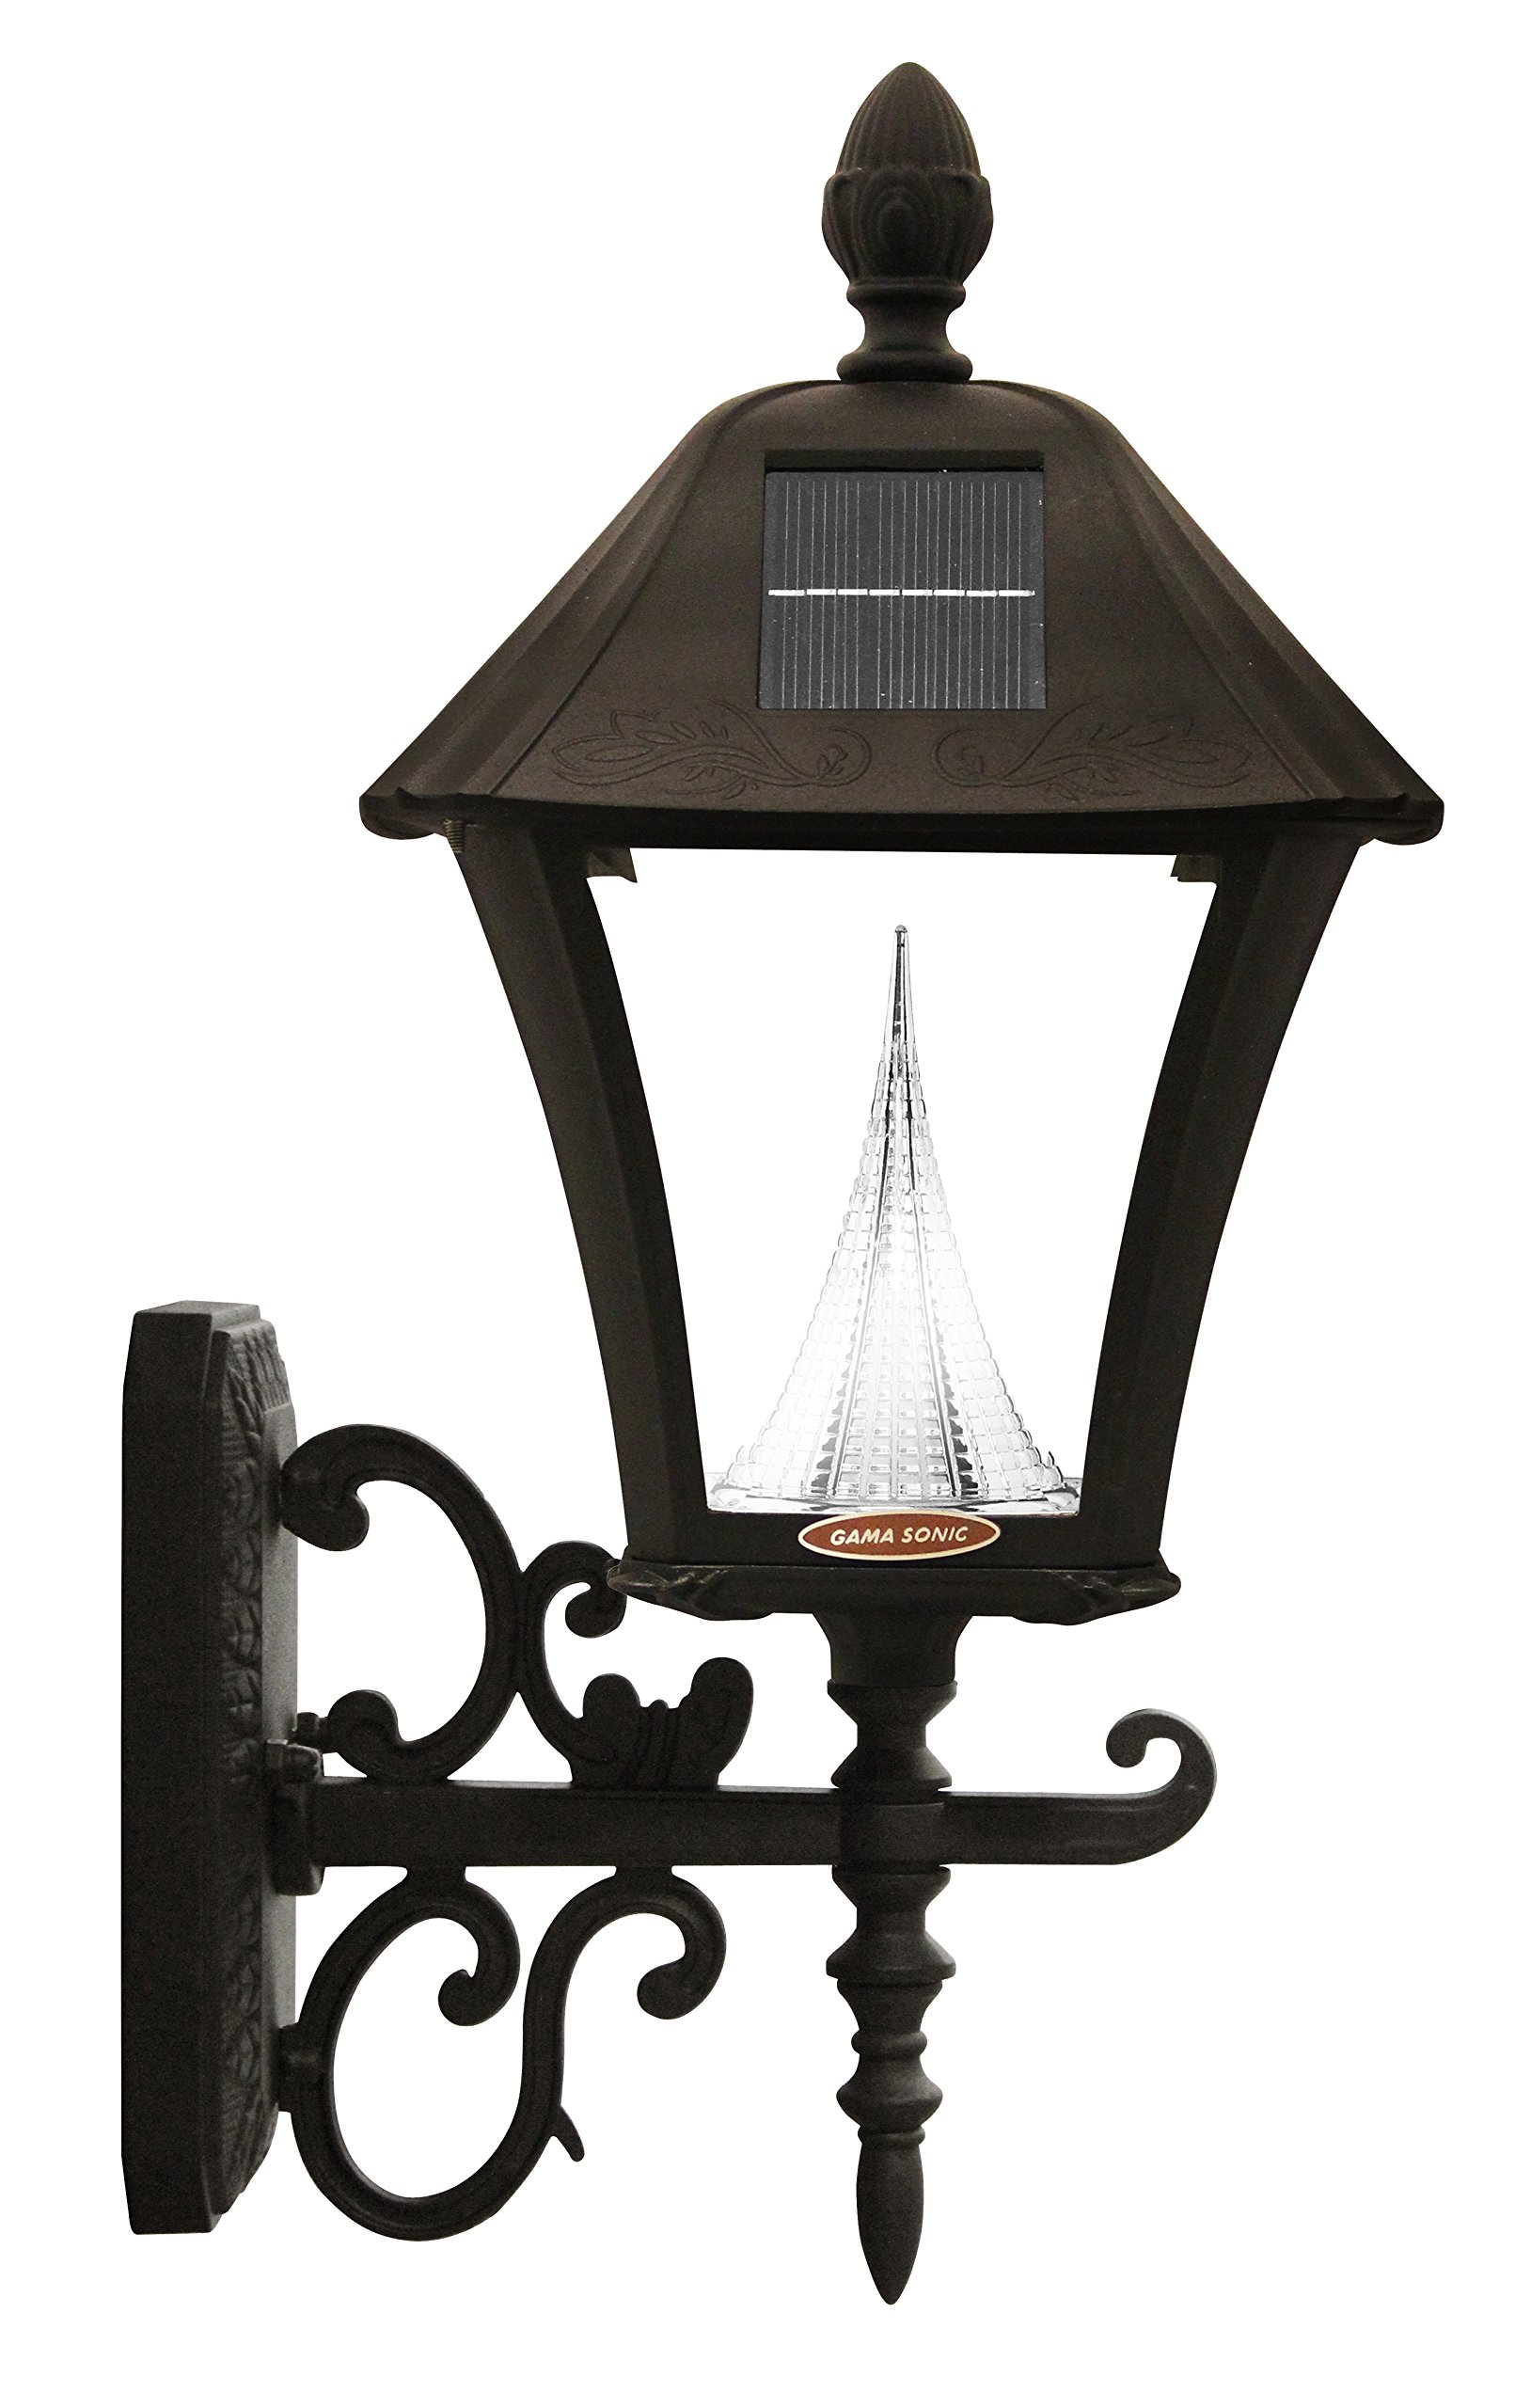 Gama Sonic Baytown Solar Outdoor LED Light Fixture, Pole/Post/Wall Mount Kit, Black Finish #GS-106FPW-B by Gama Sonic (Image #4)